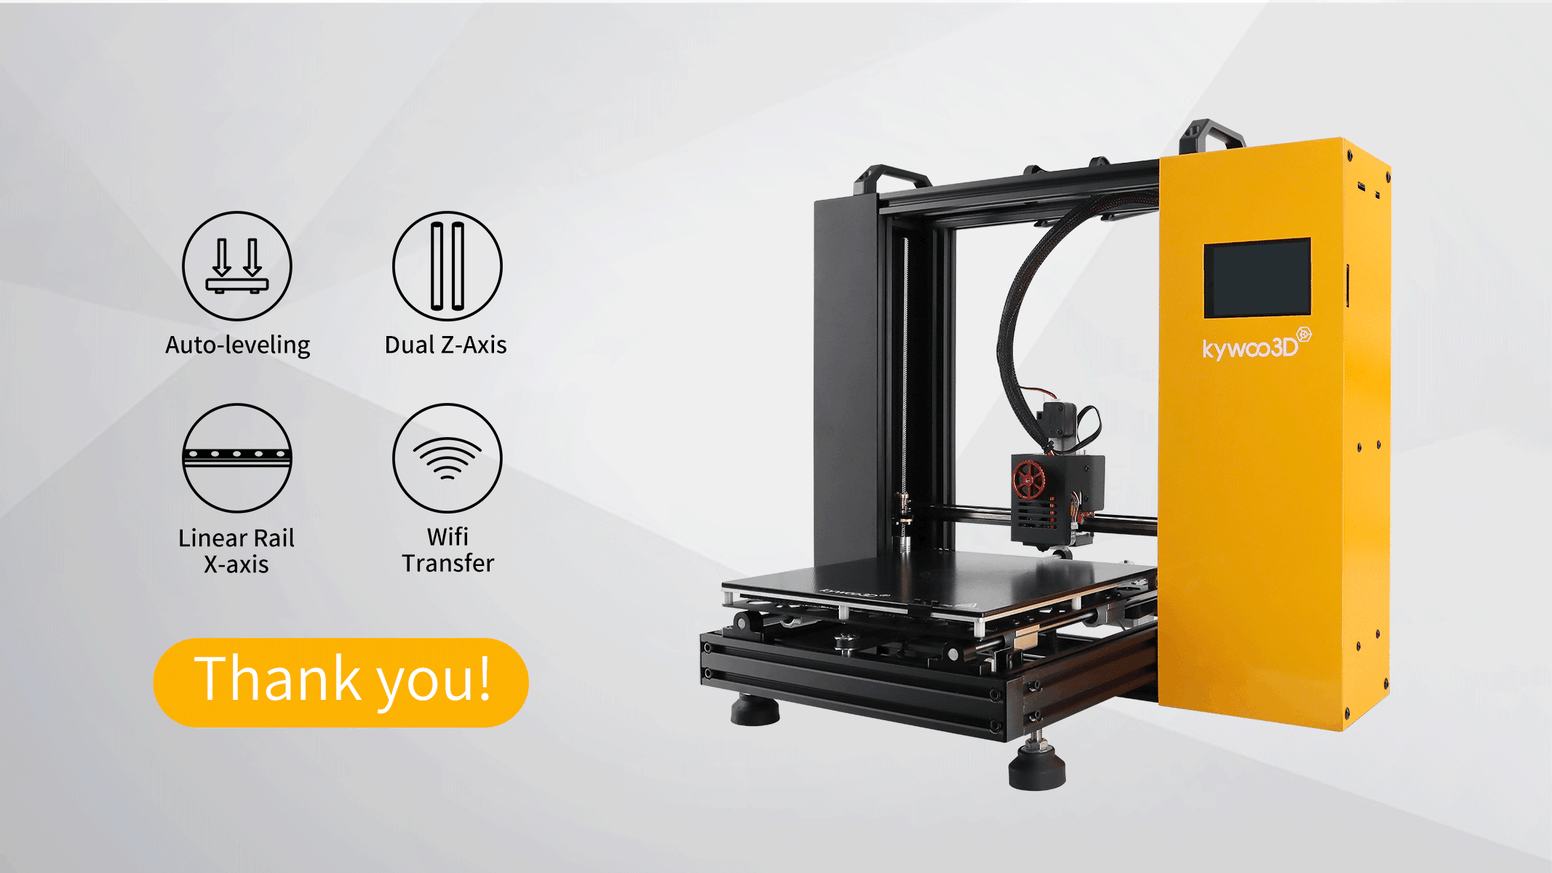 Bring your 3D creations to life with the powerful 3D printer available for hobbyists. Faster, more precise, and more stable.